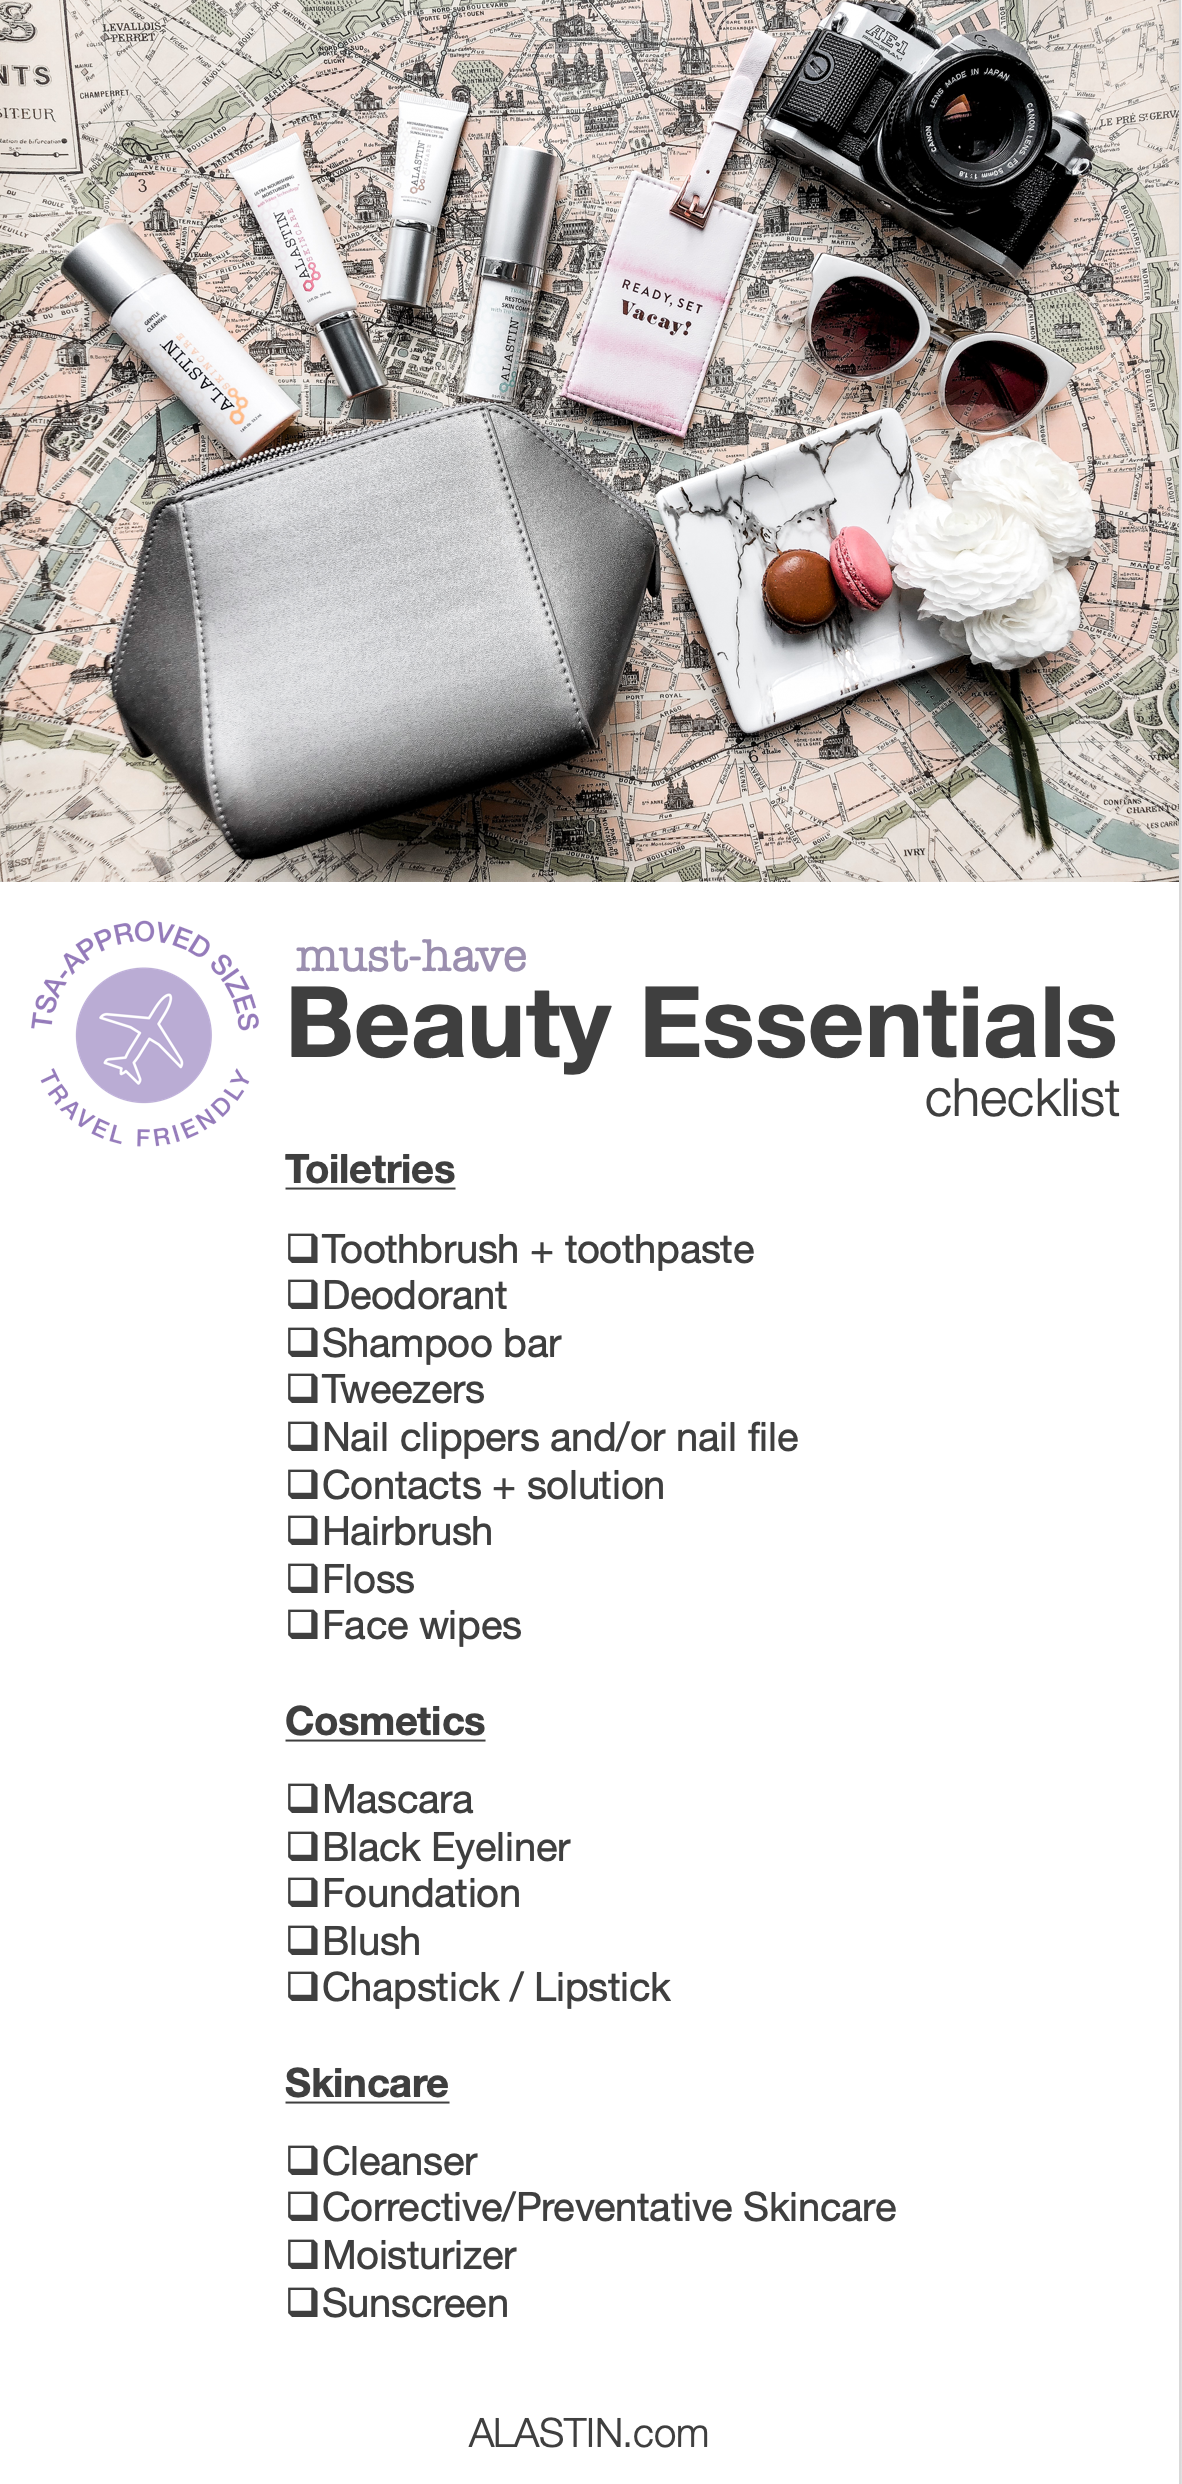 Beauty Travel Essentials Checklist | ALASTIN Skincare